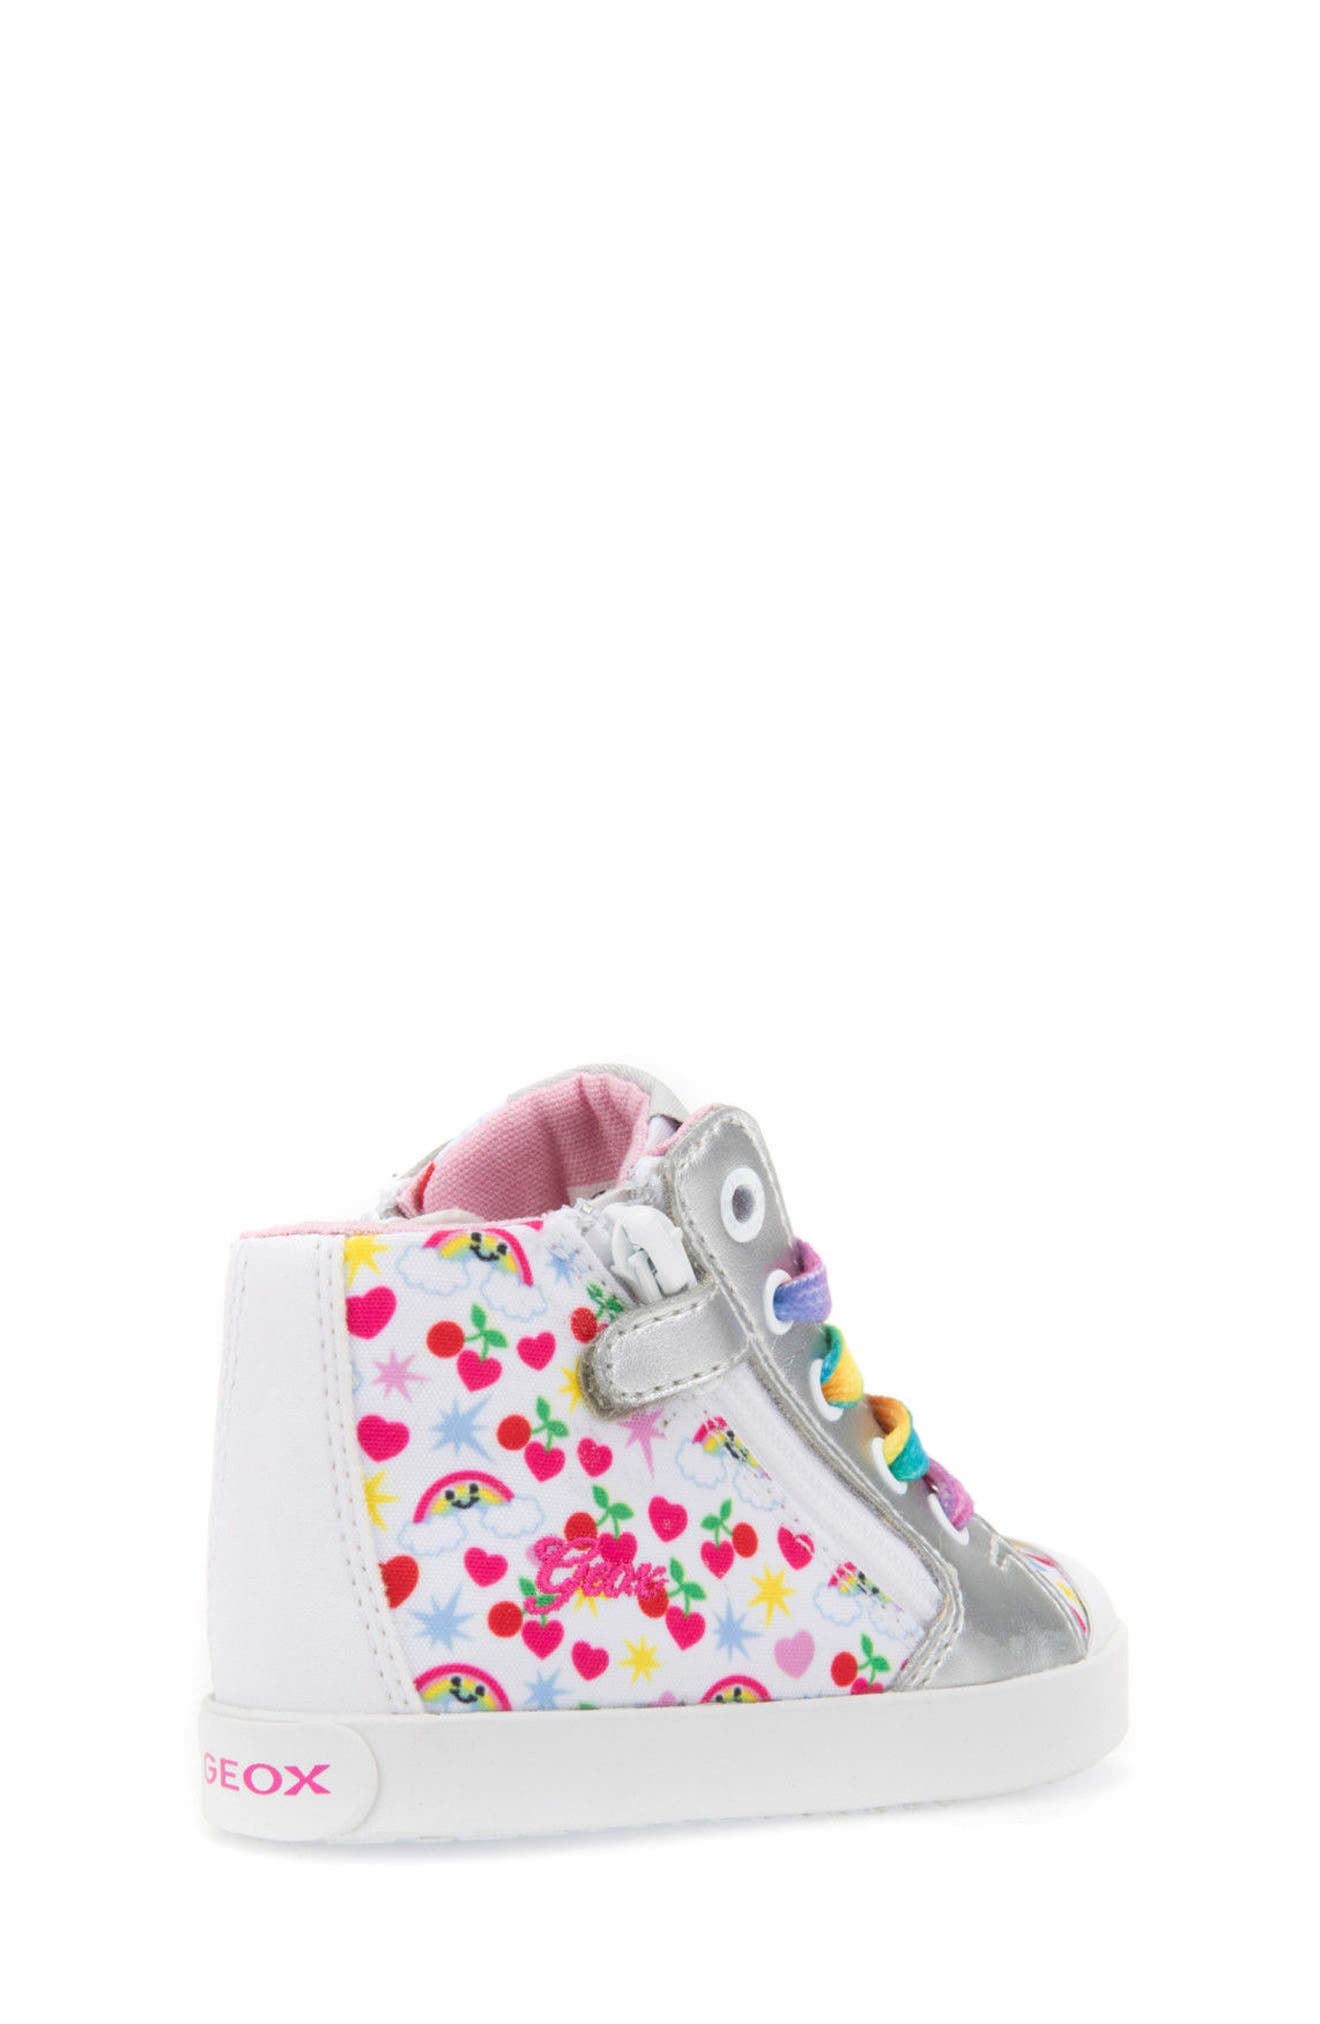 Kilwi Patterned High Top Sneaker,                             Alternate thumbnail 2, color,                             White/ Multicolor